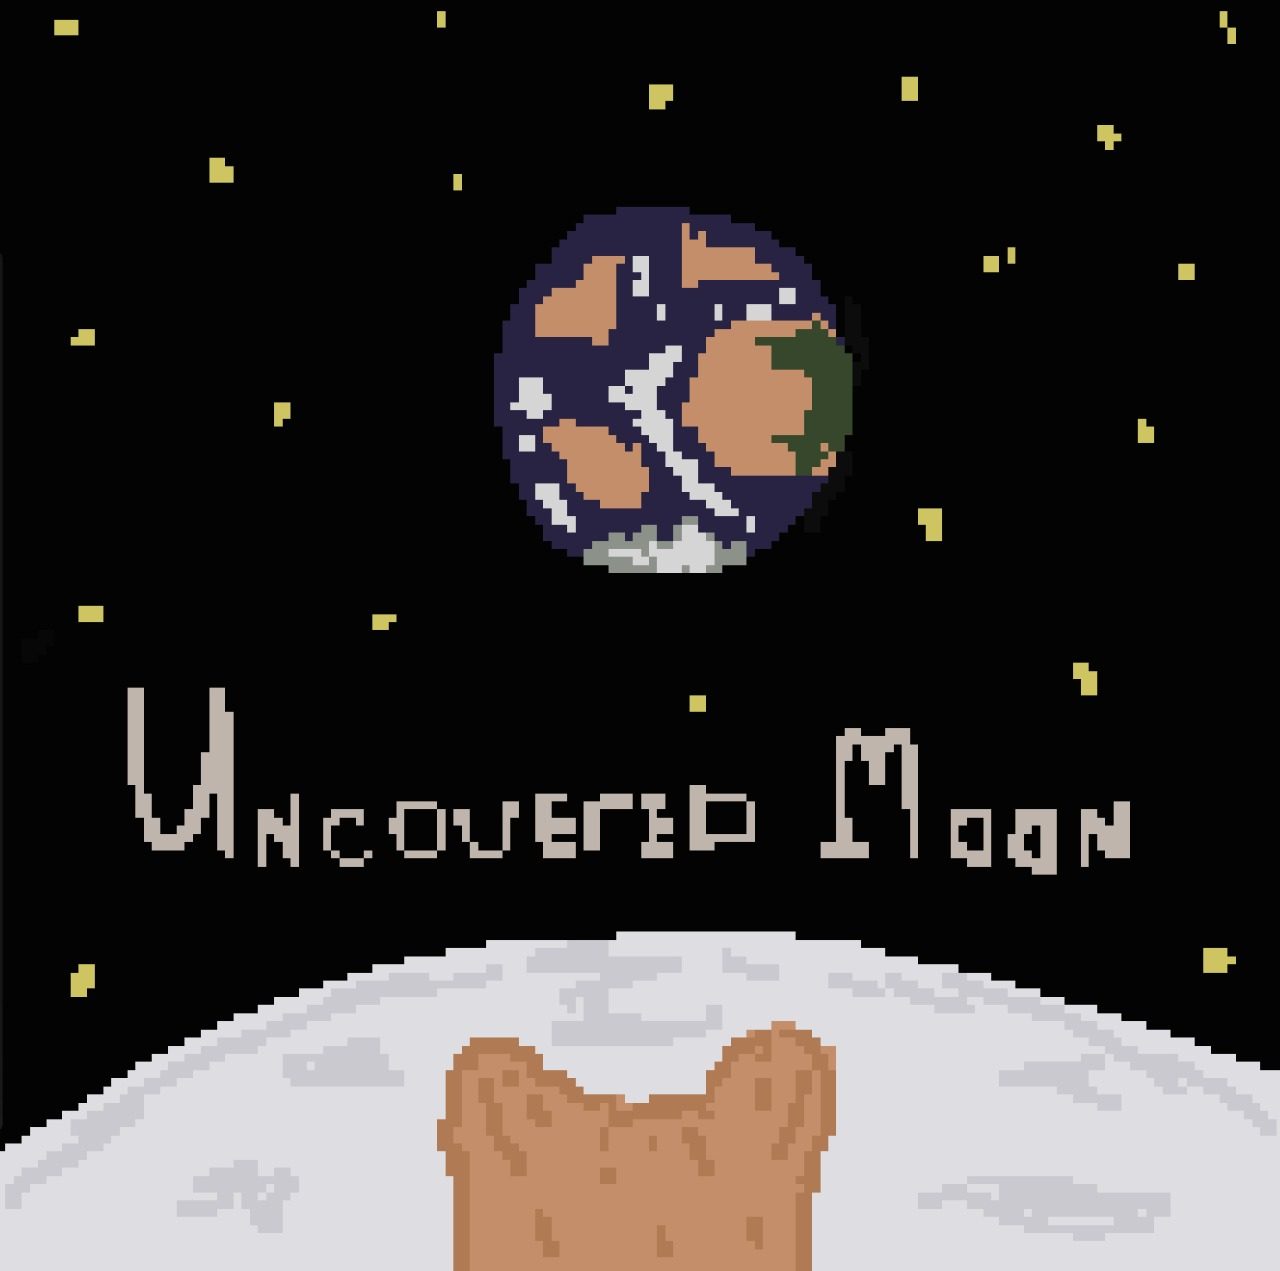 The Uncovered Moon